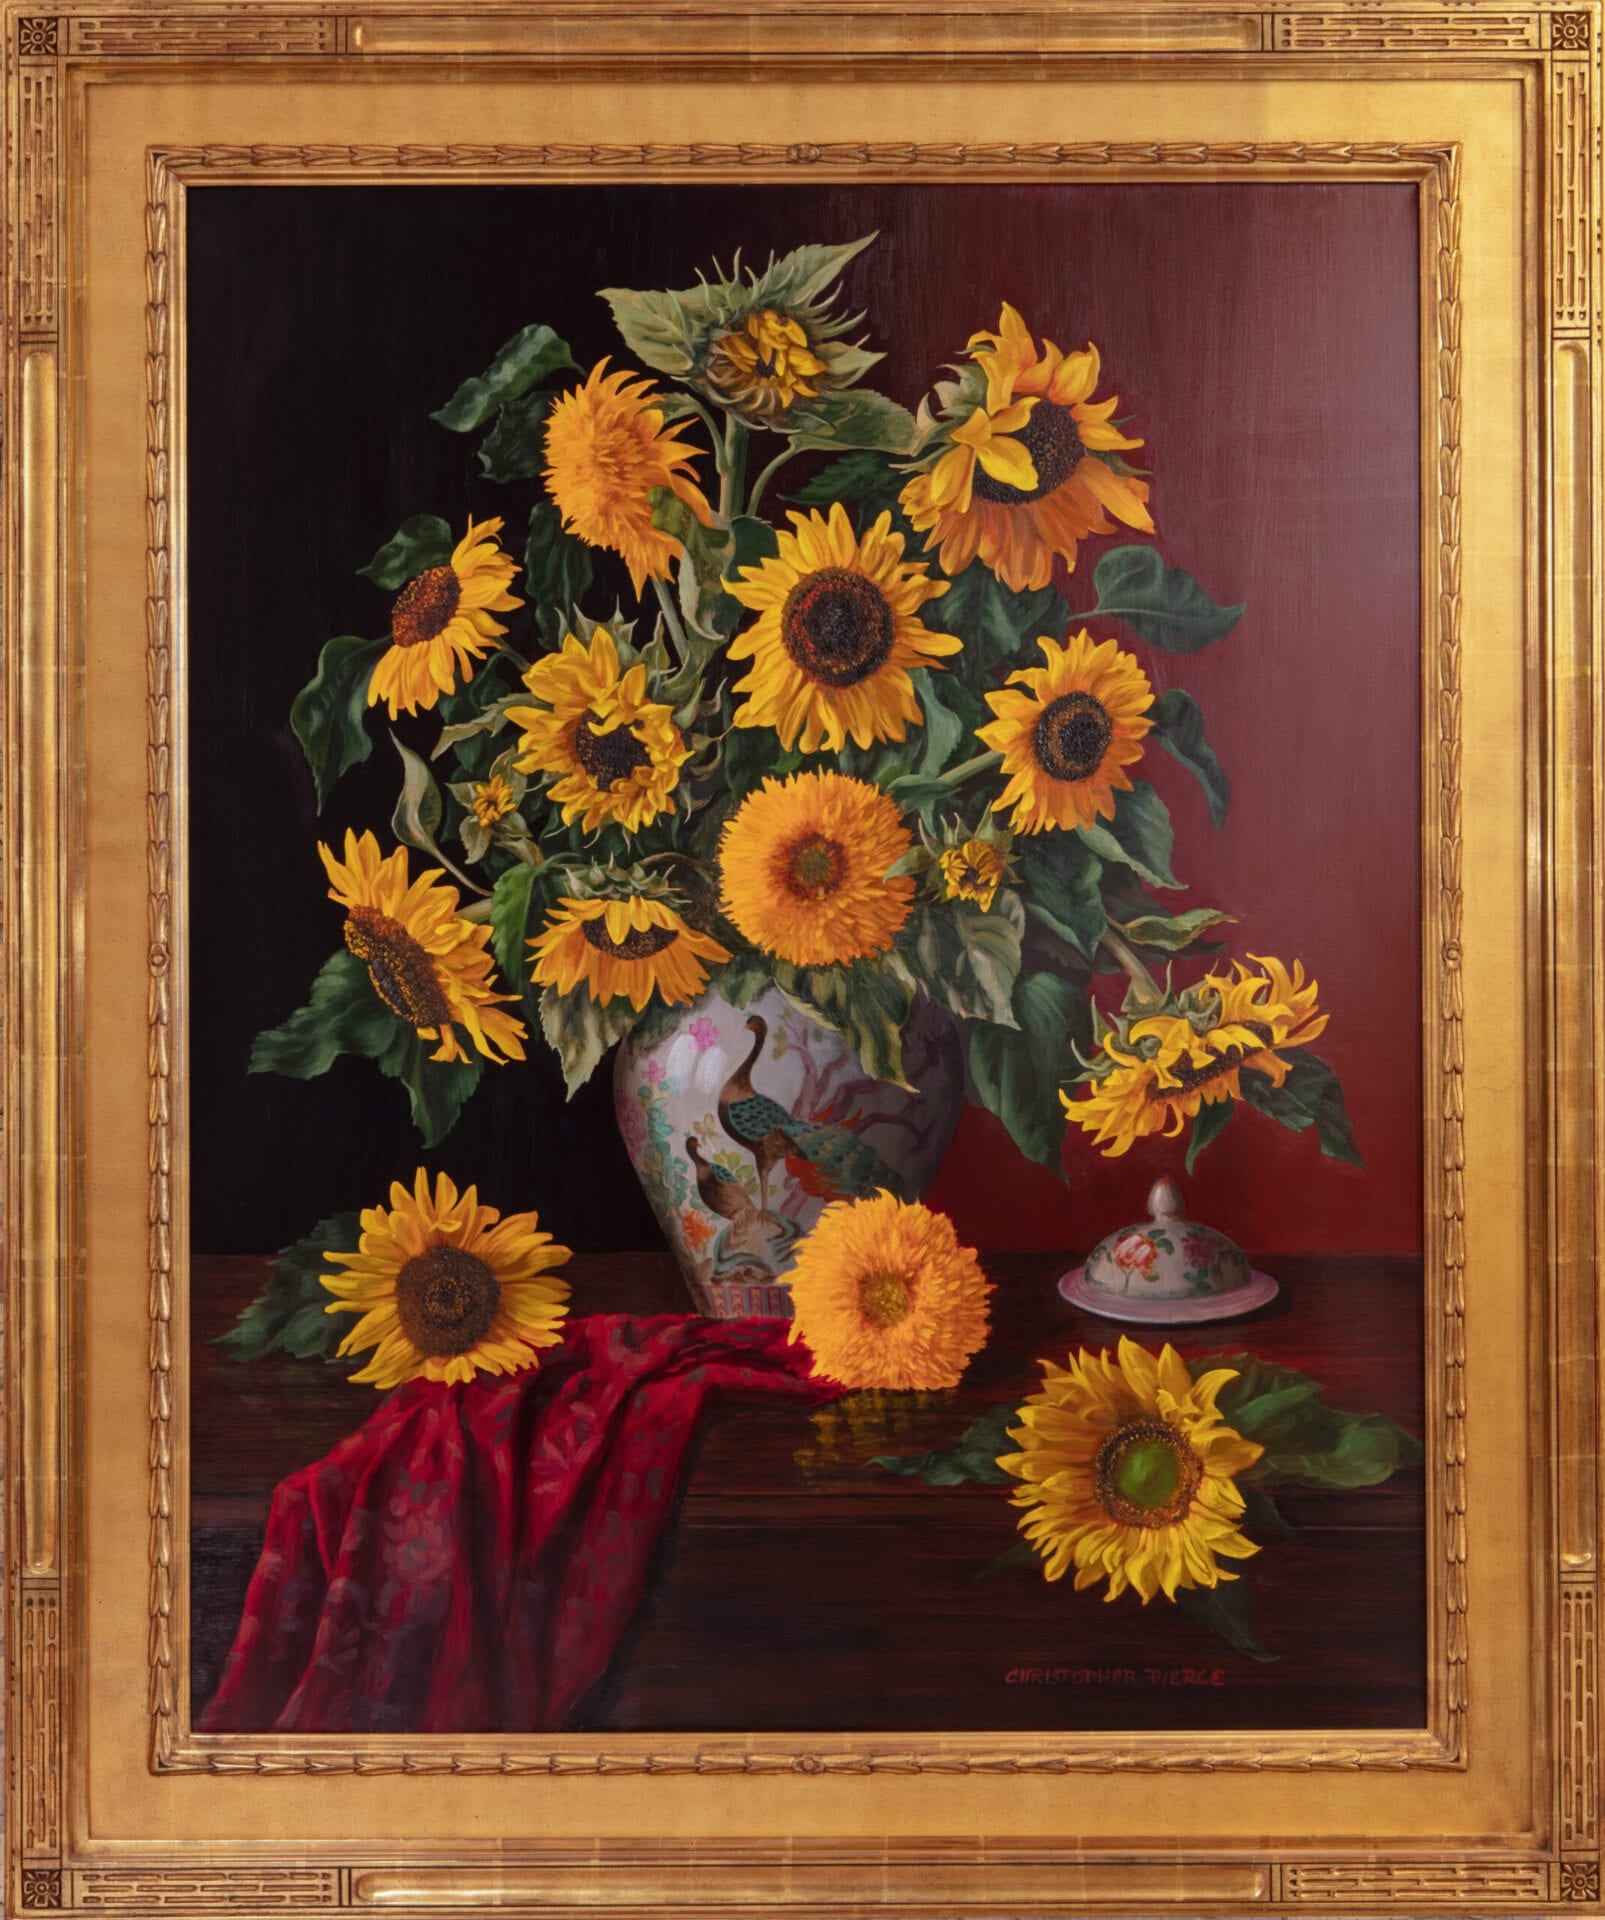 Sunflowers | Christopher Pierce | Oil on Canvas | 50 x 40""